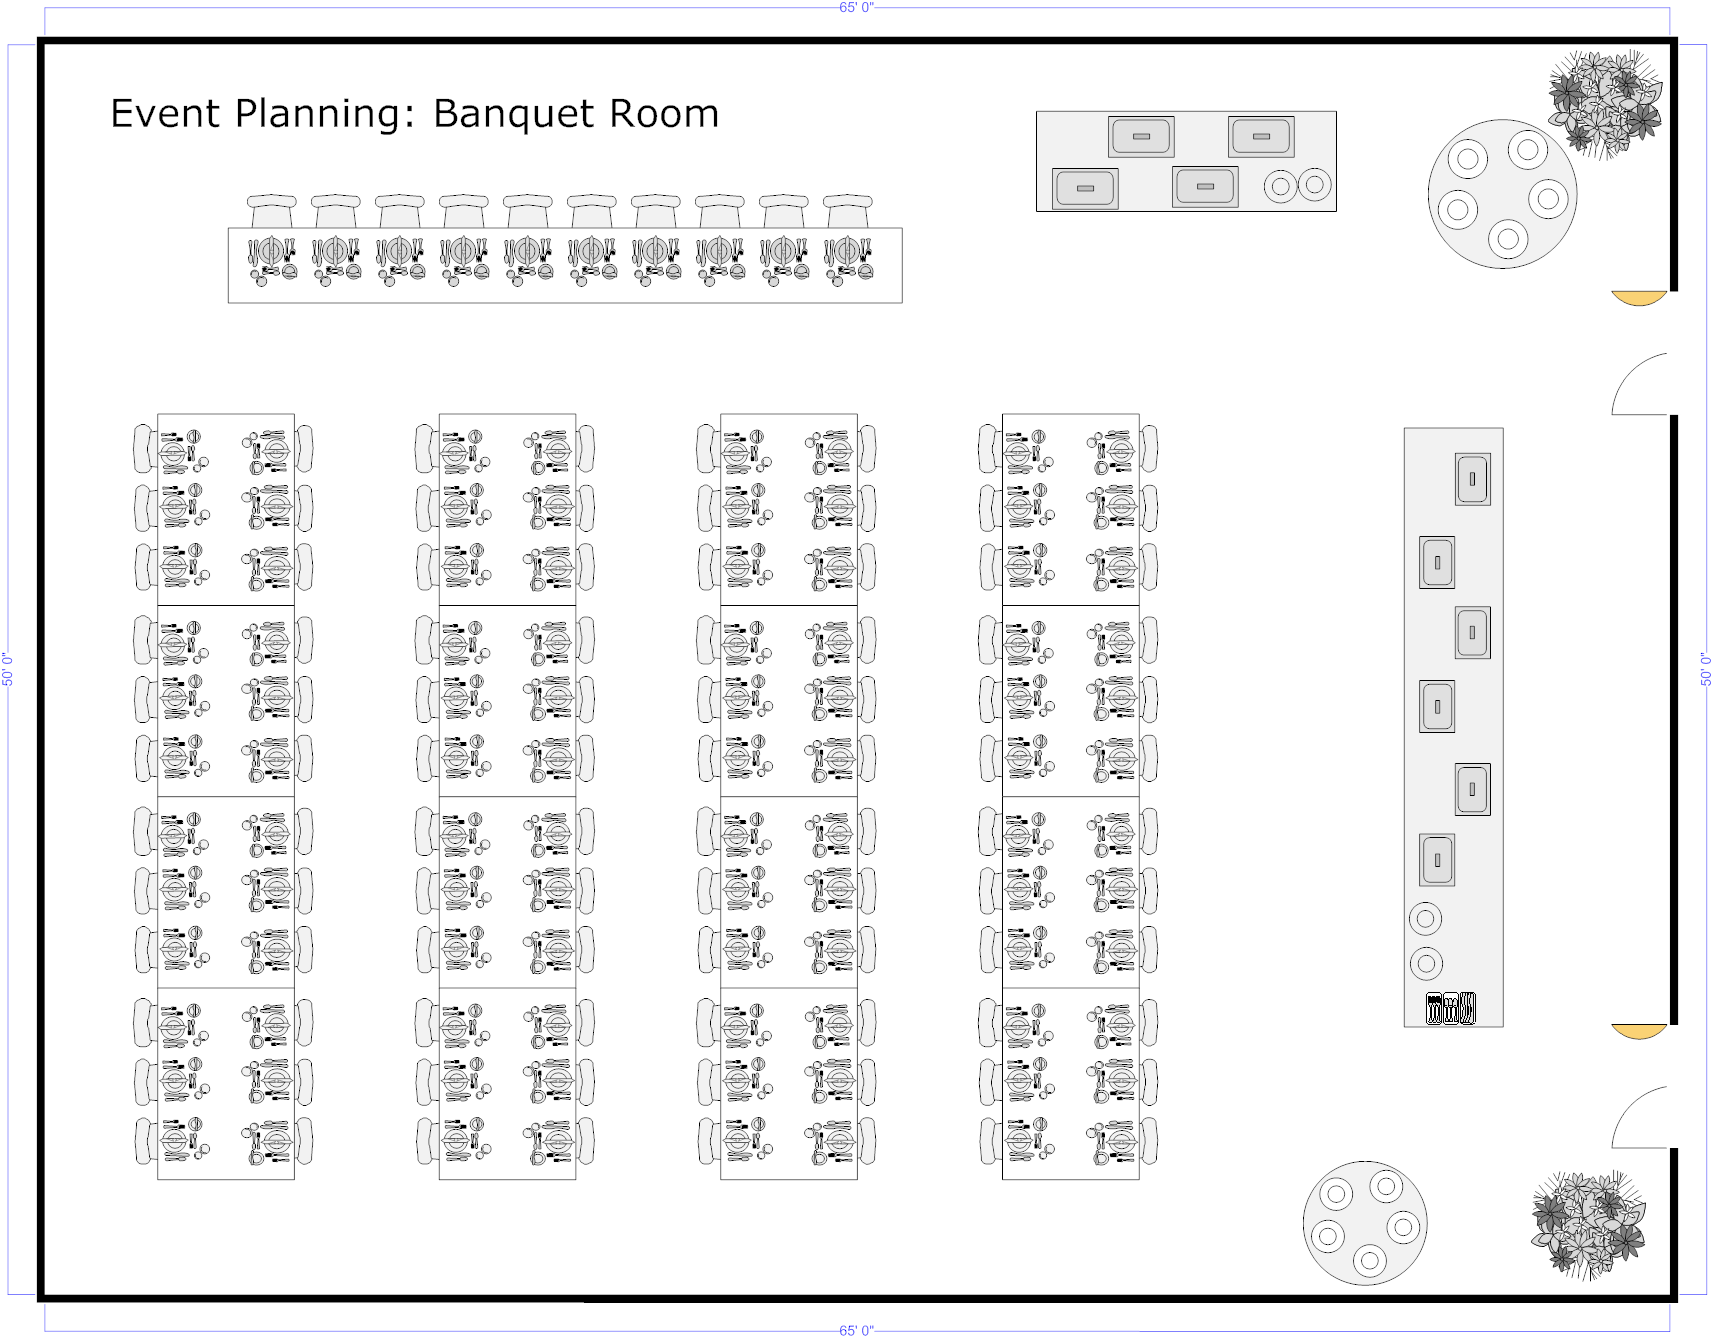 Banquet planning software make plans for banquets Meeting space calculator